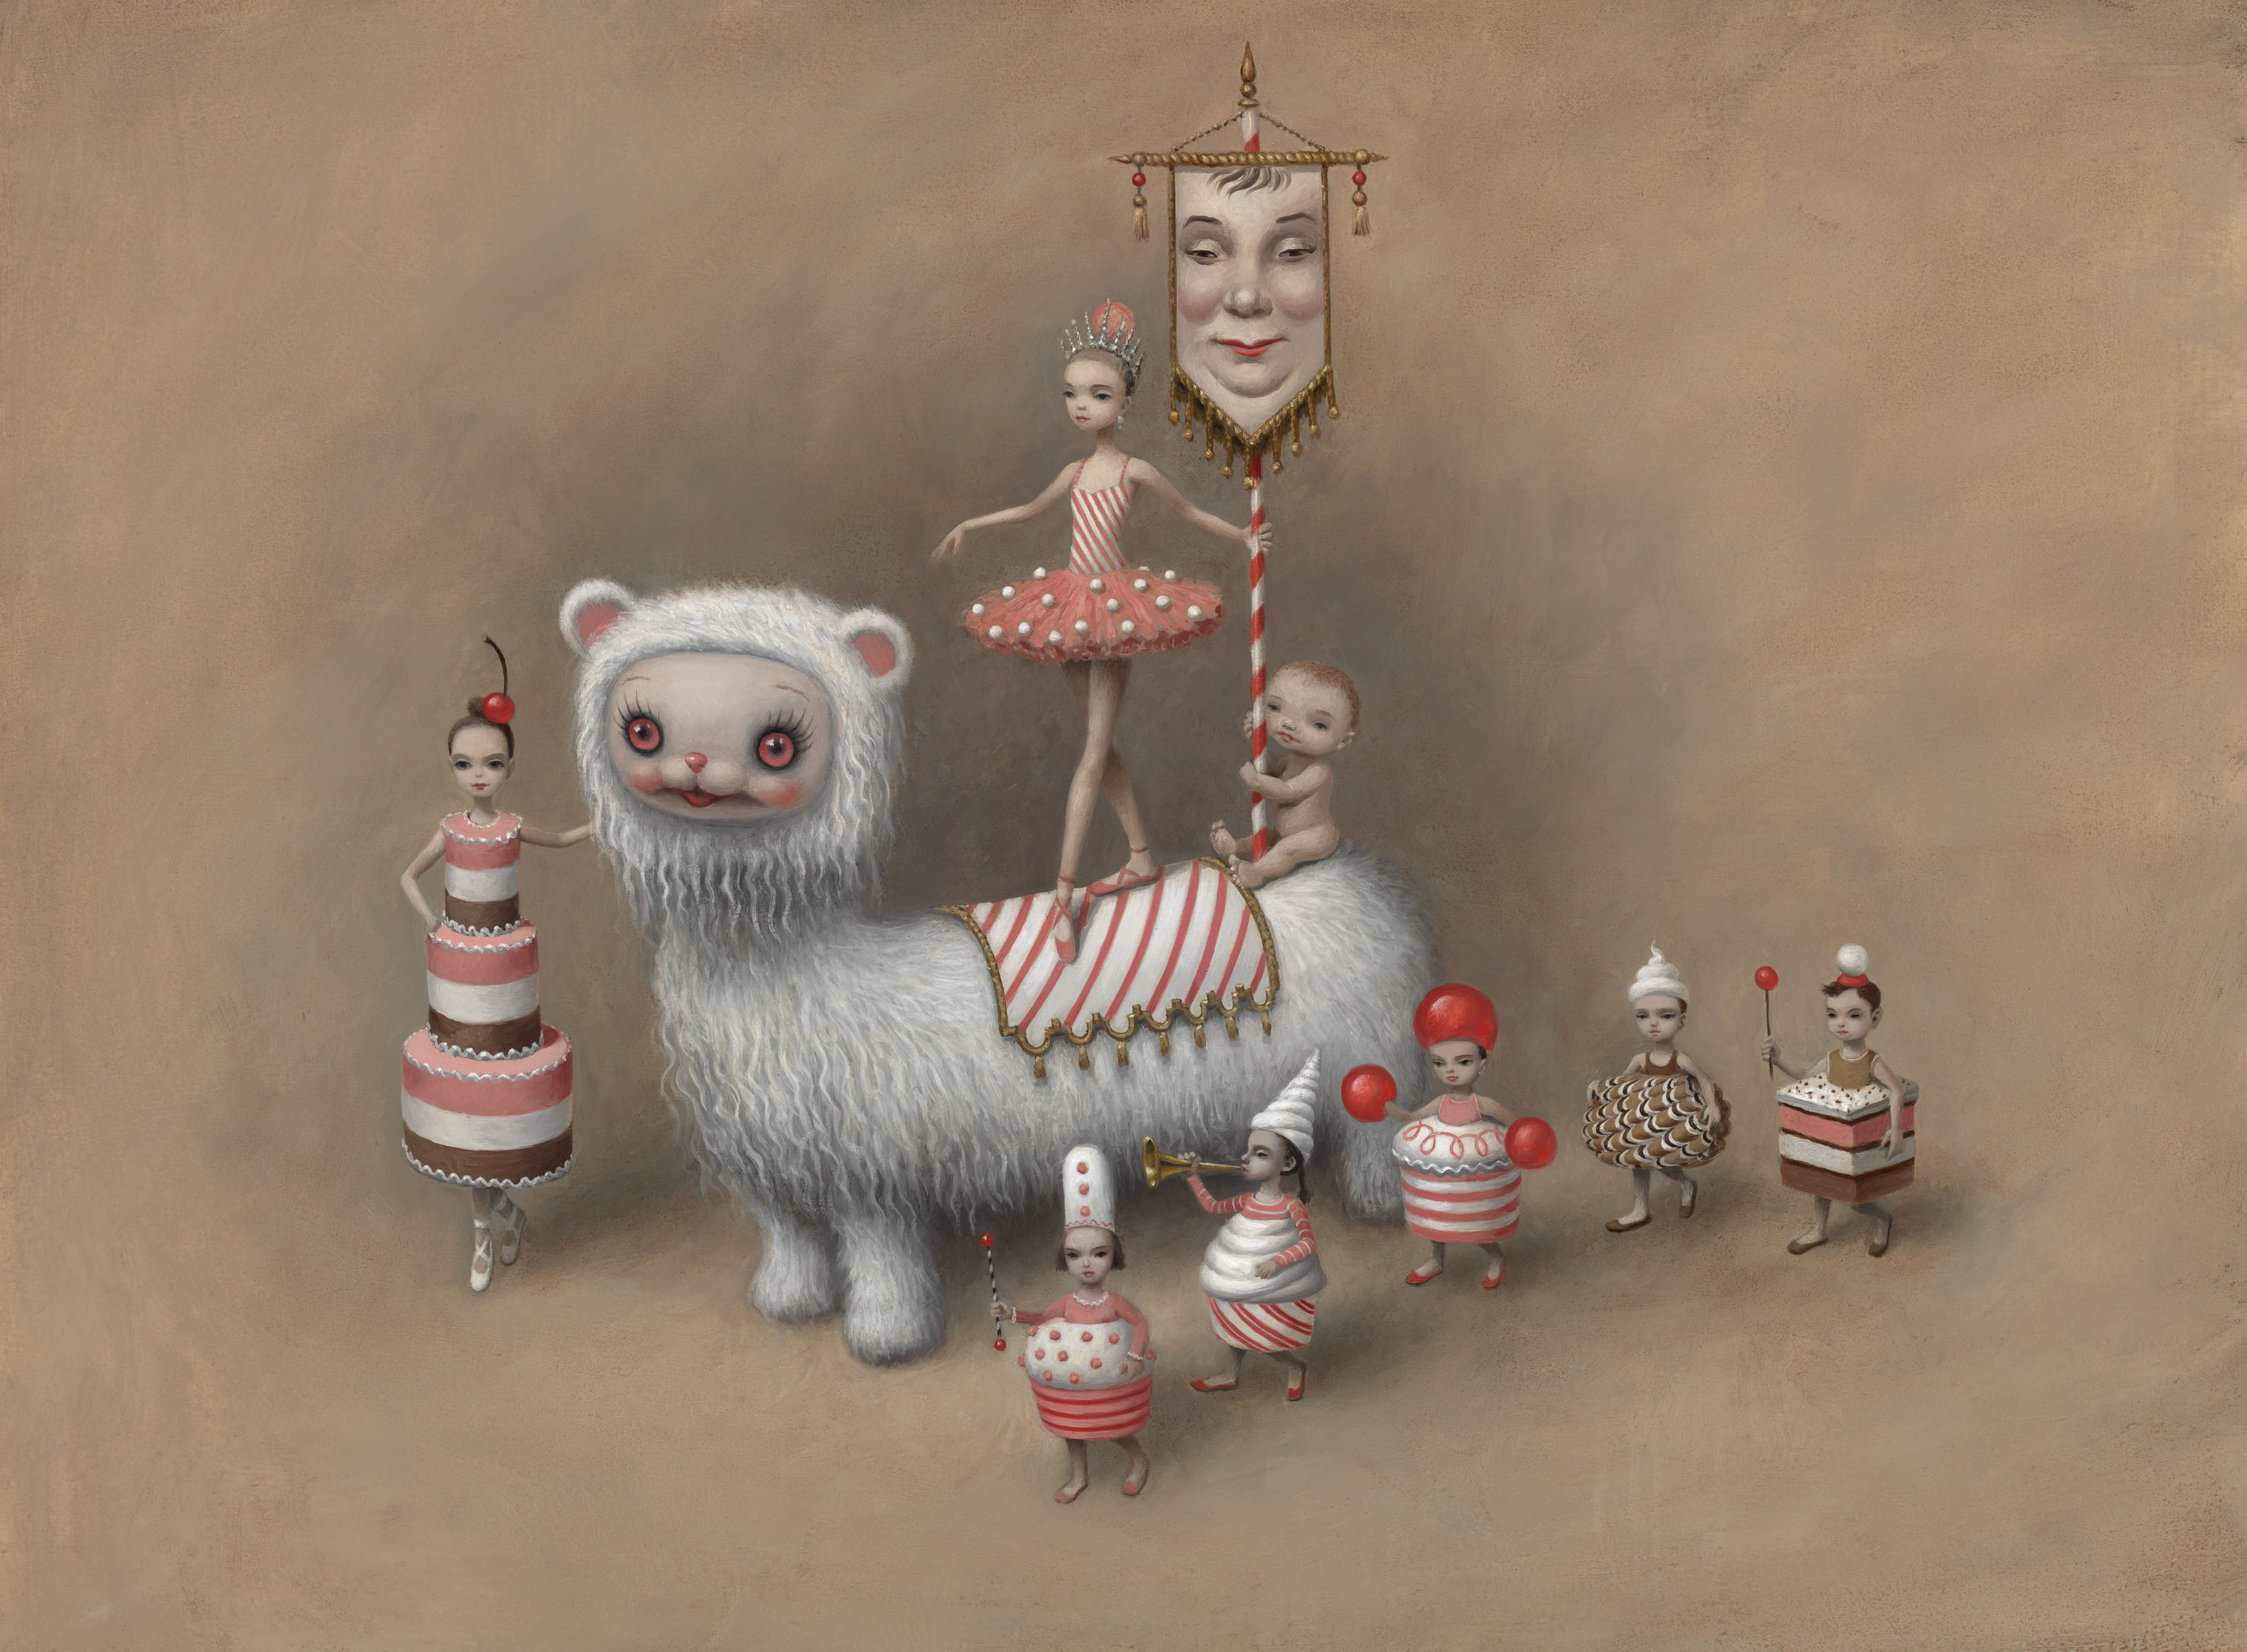 Artwork by Mark Ryden.